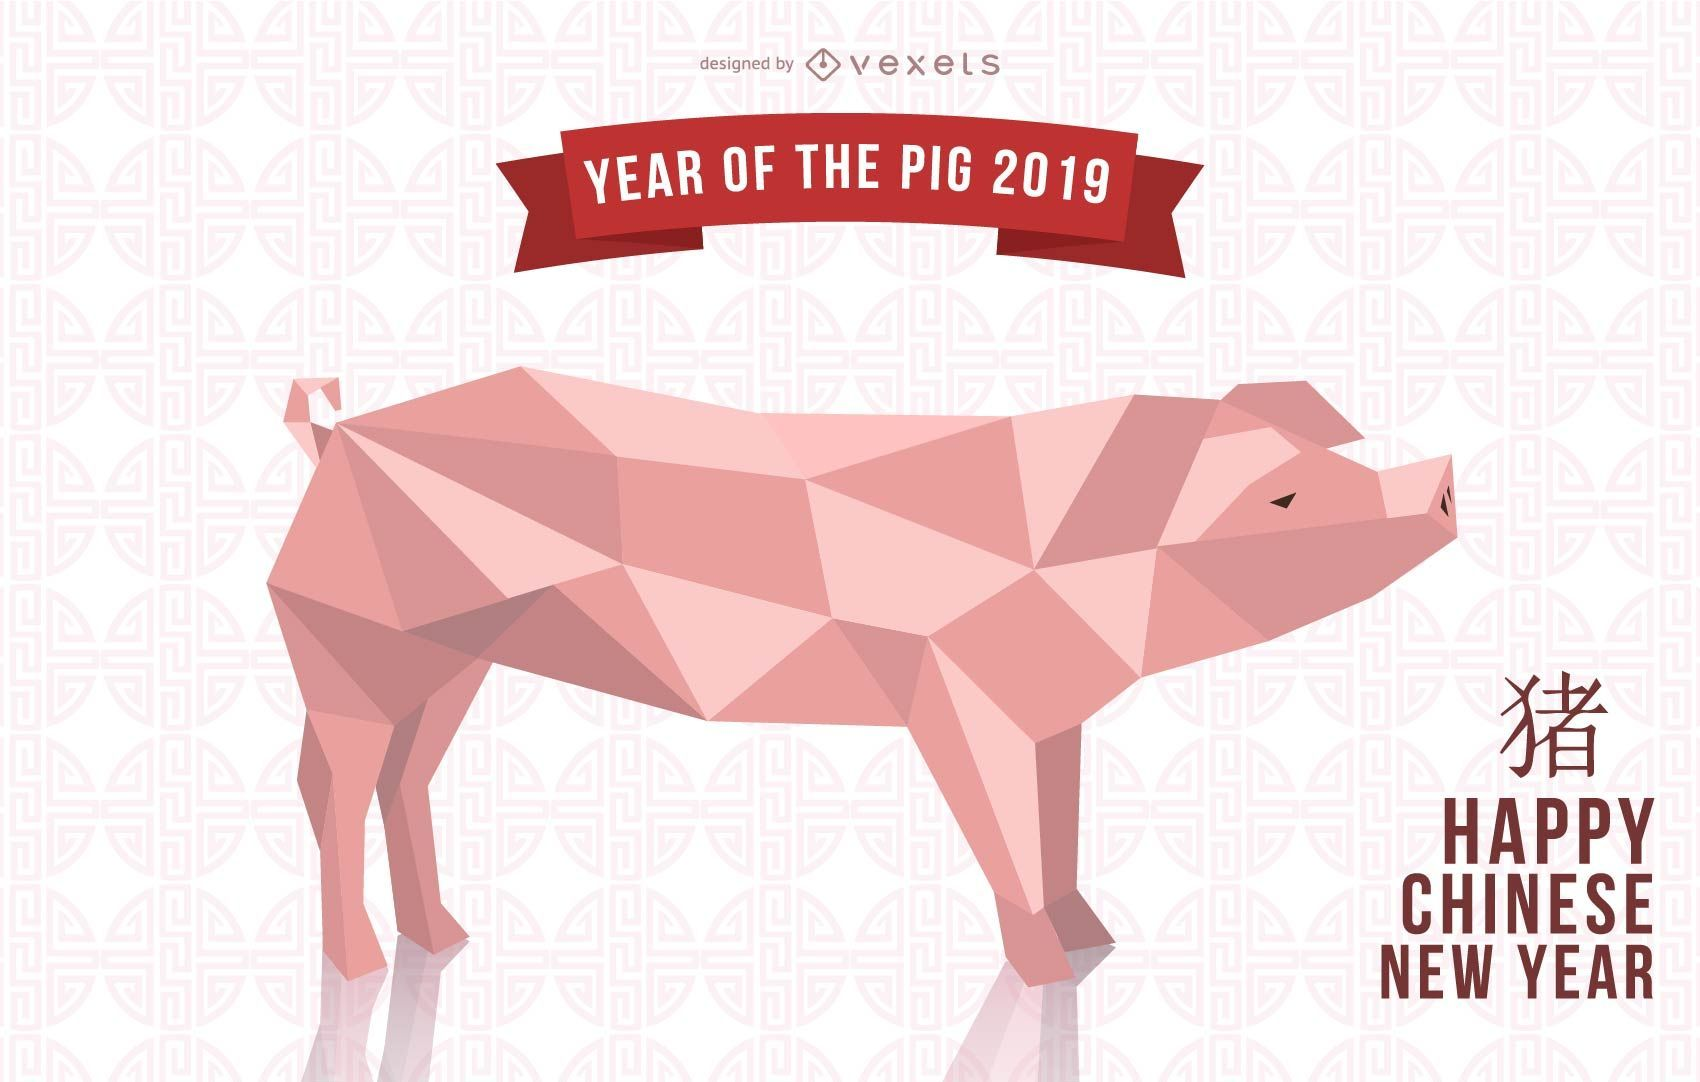 Year of the pig 2019 design